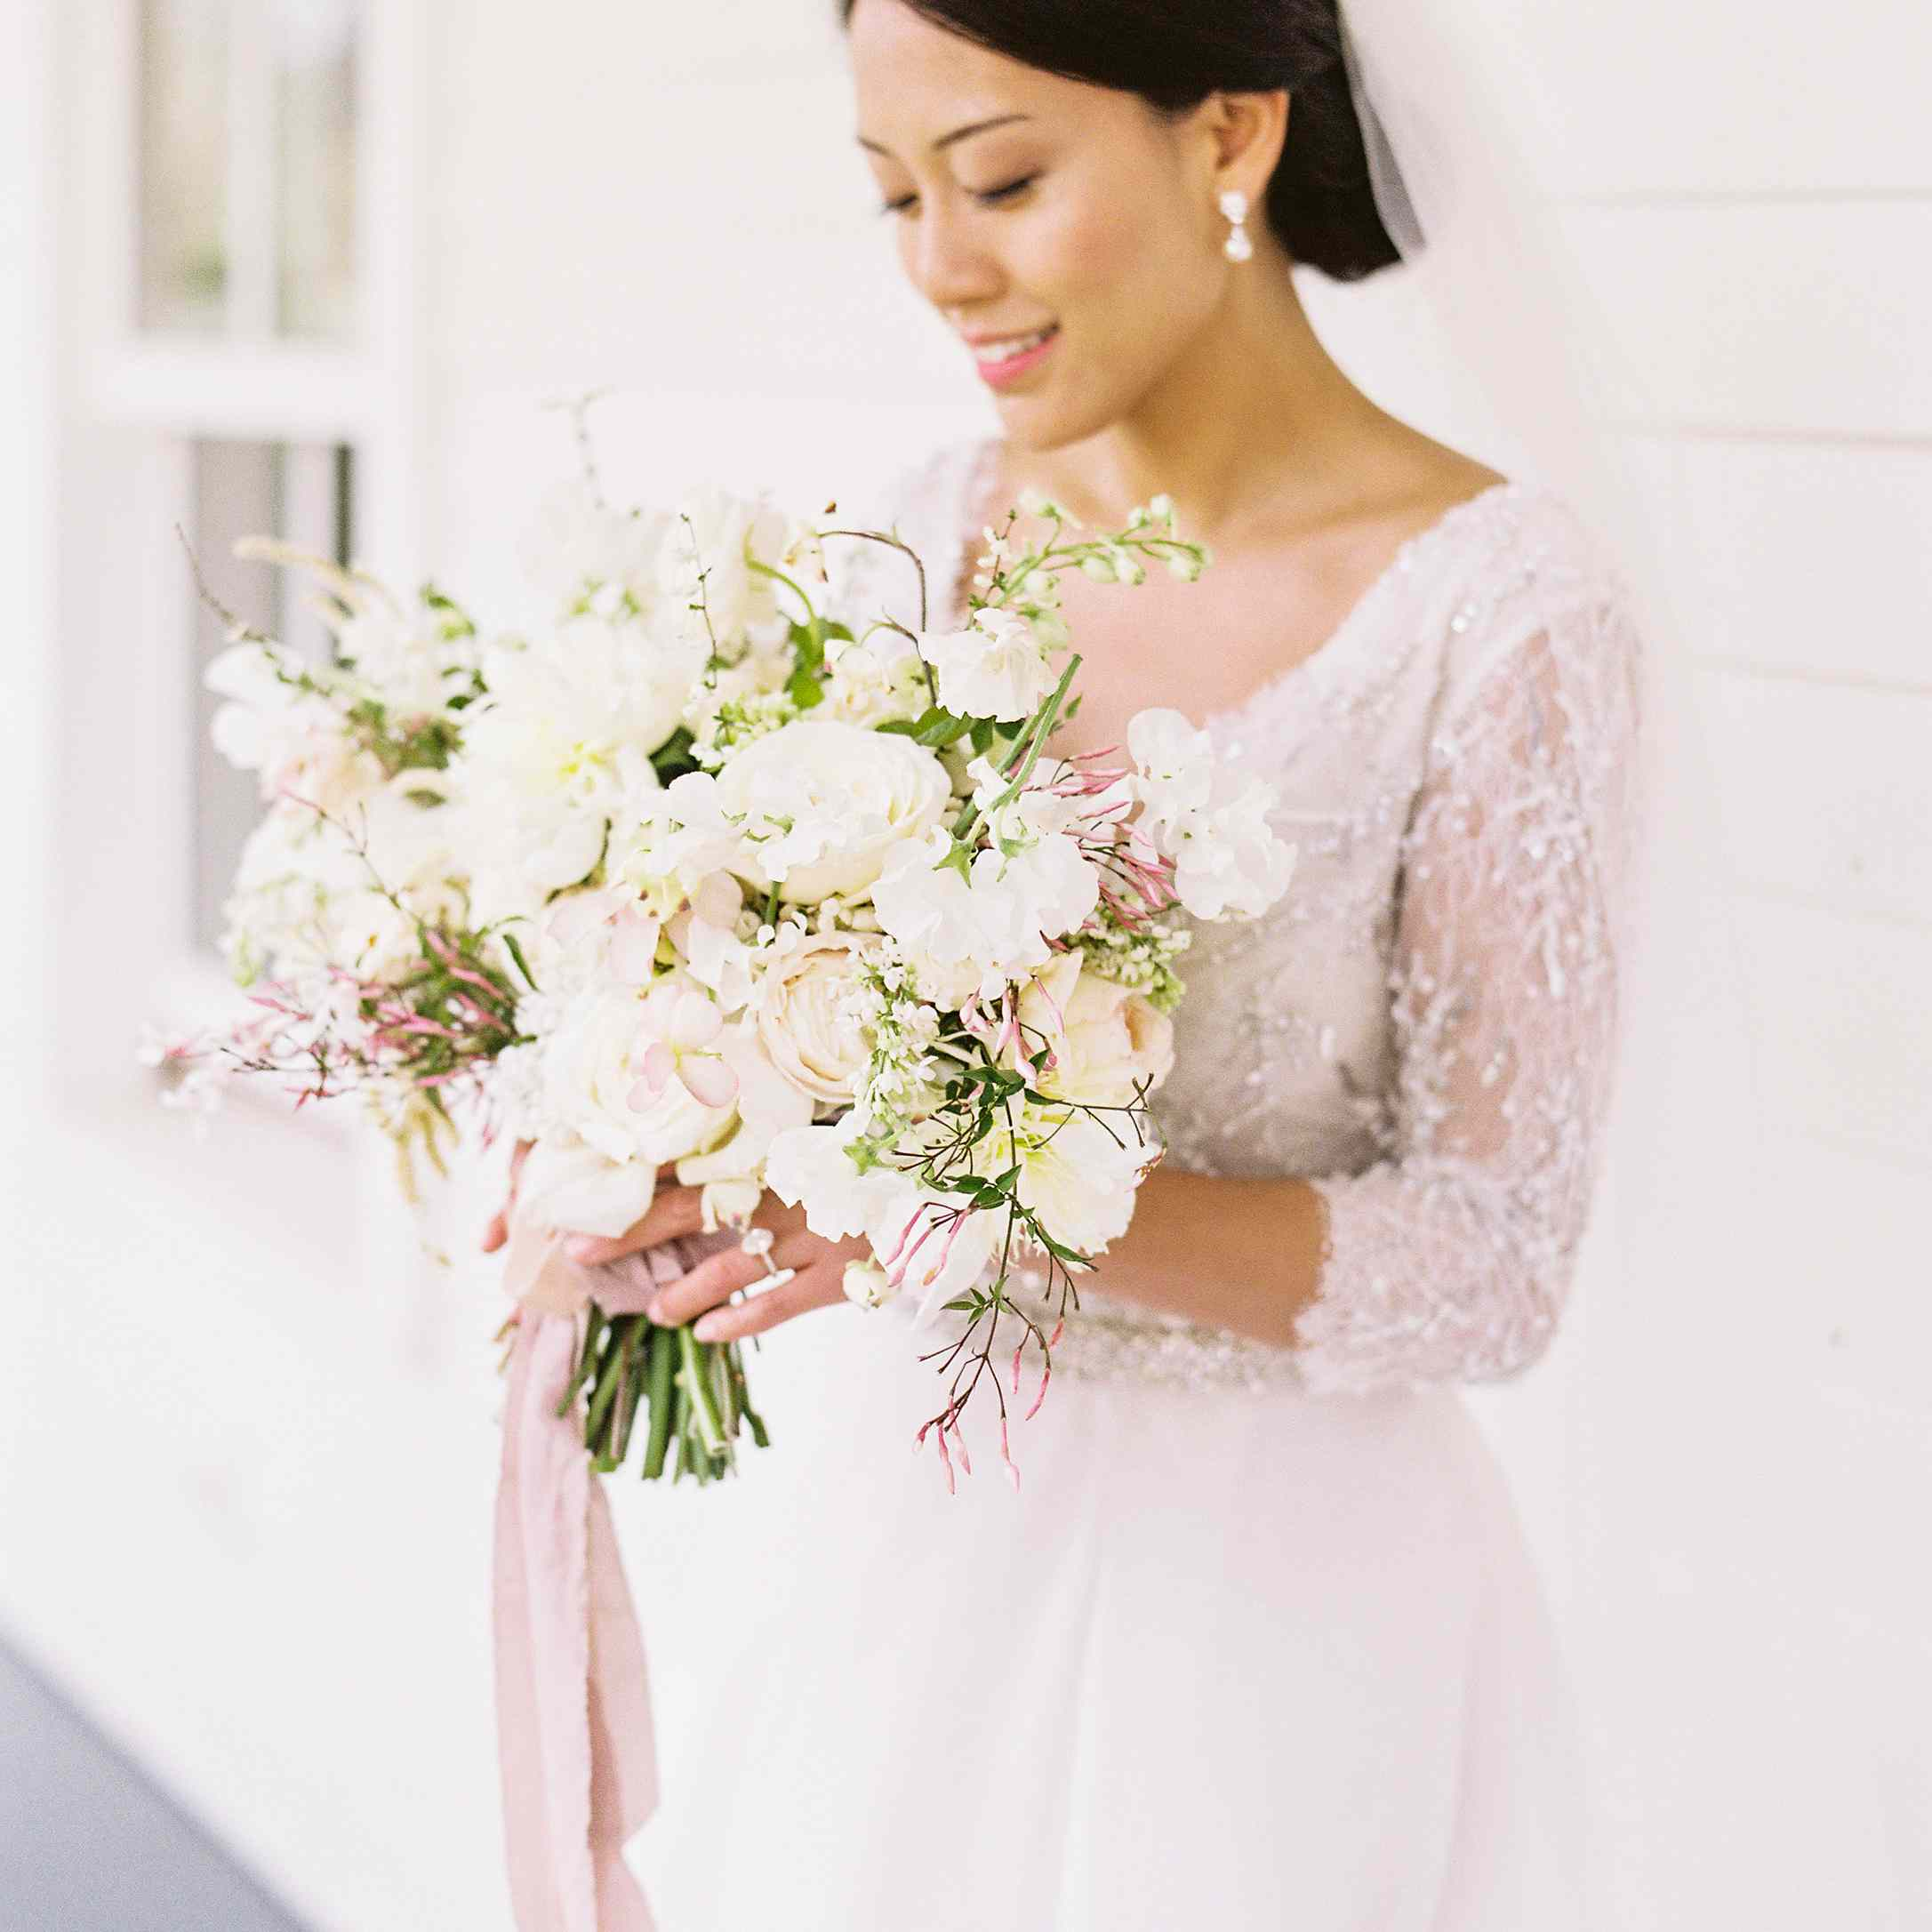 Bride holding an all white bouquet of dogwood and roses